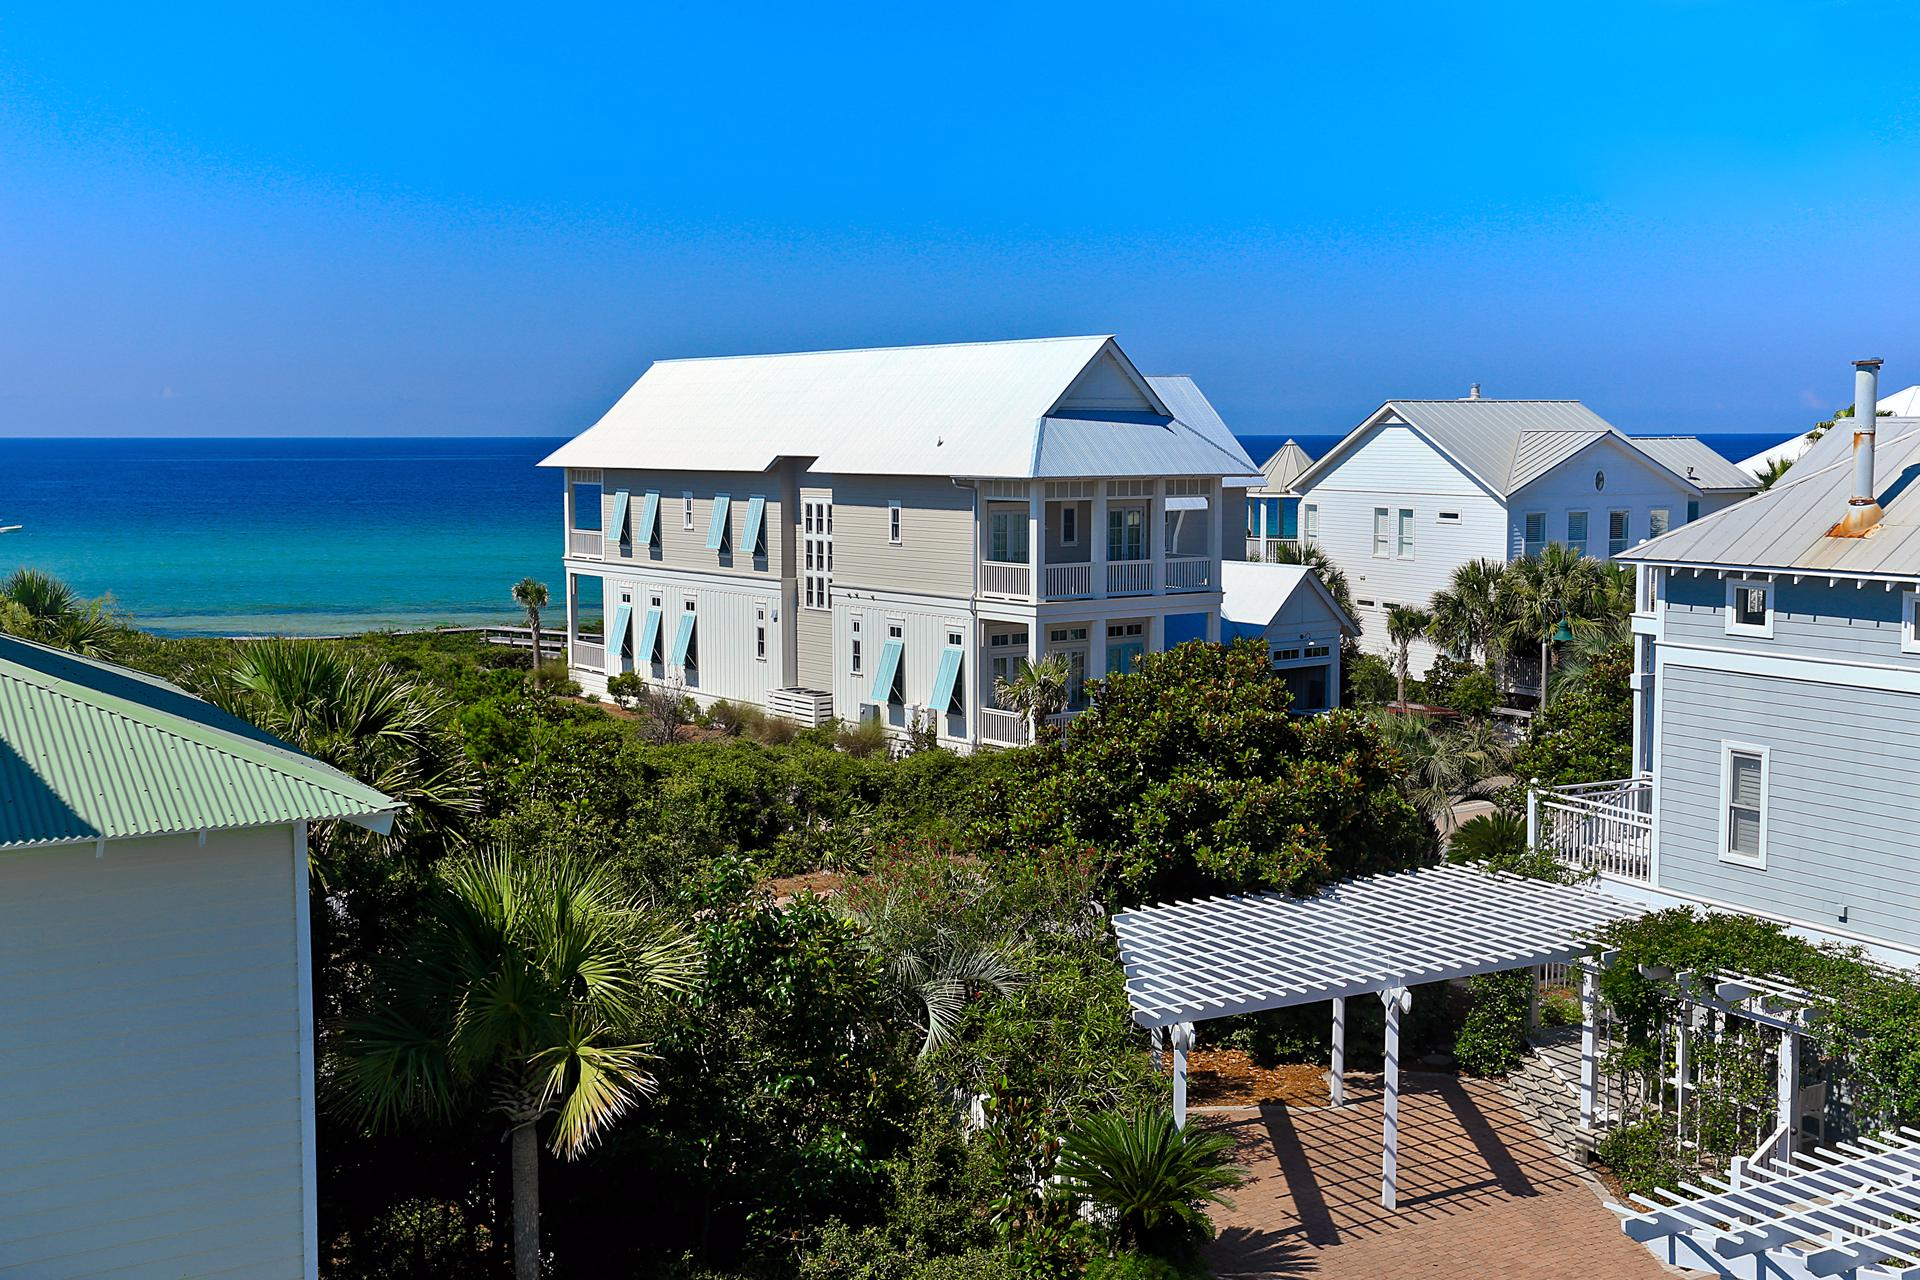 Over the Dune | 30A Luxury Vacation Rentals